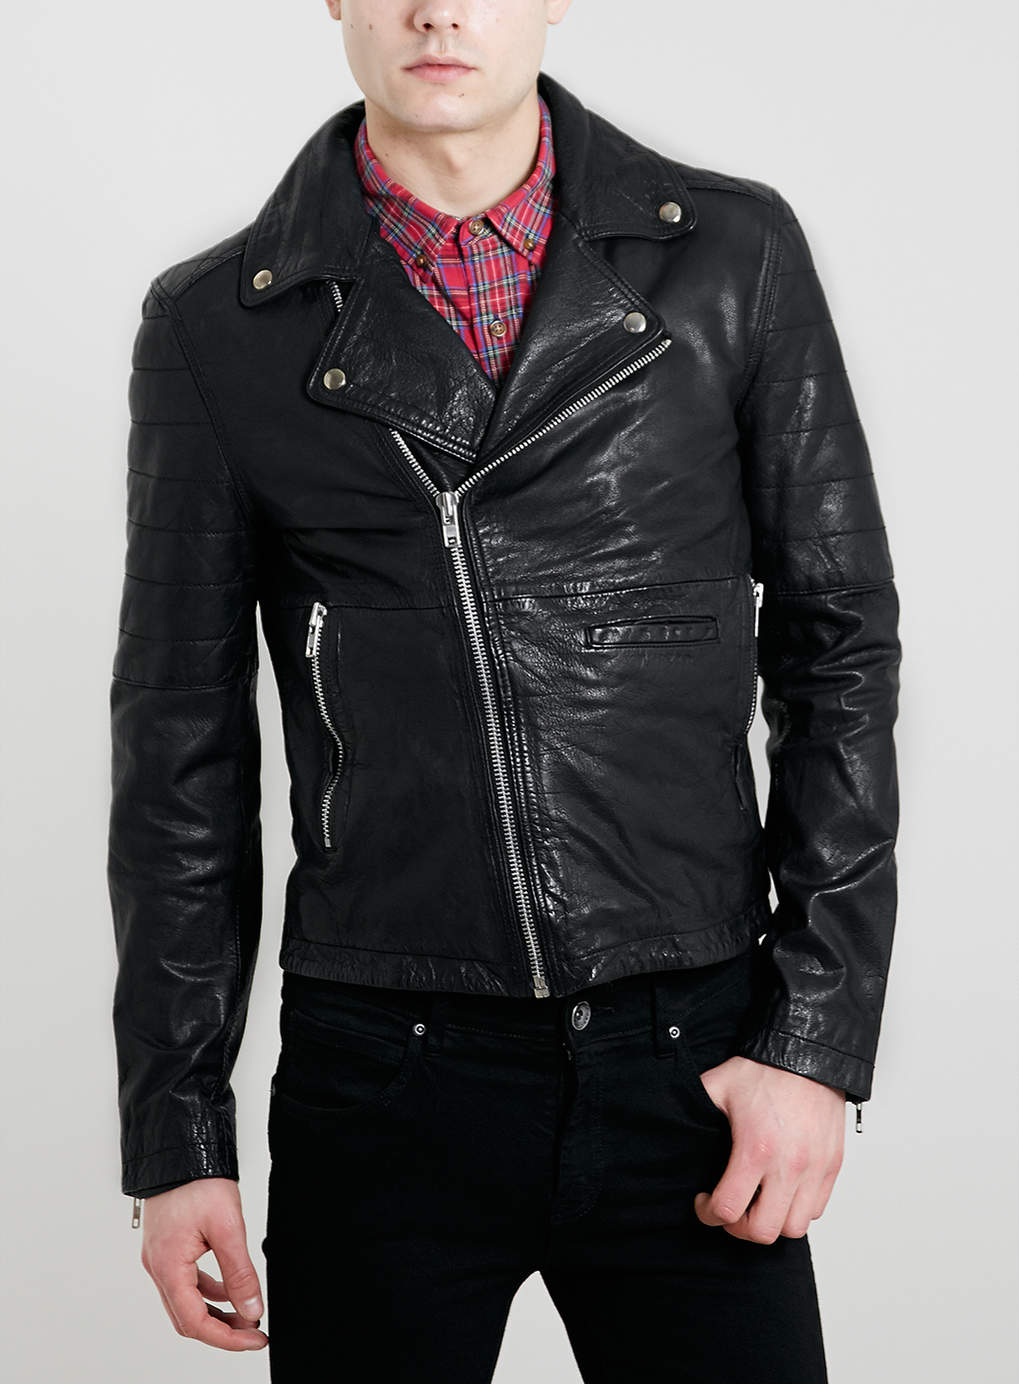 LEATHER BIKER JACKET - Leather Jackets - Leather & Leather Look ...